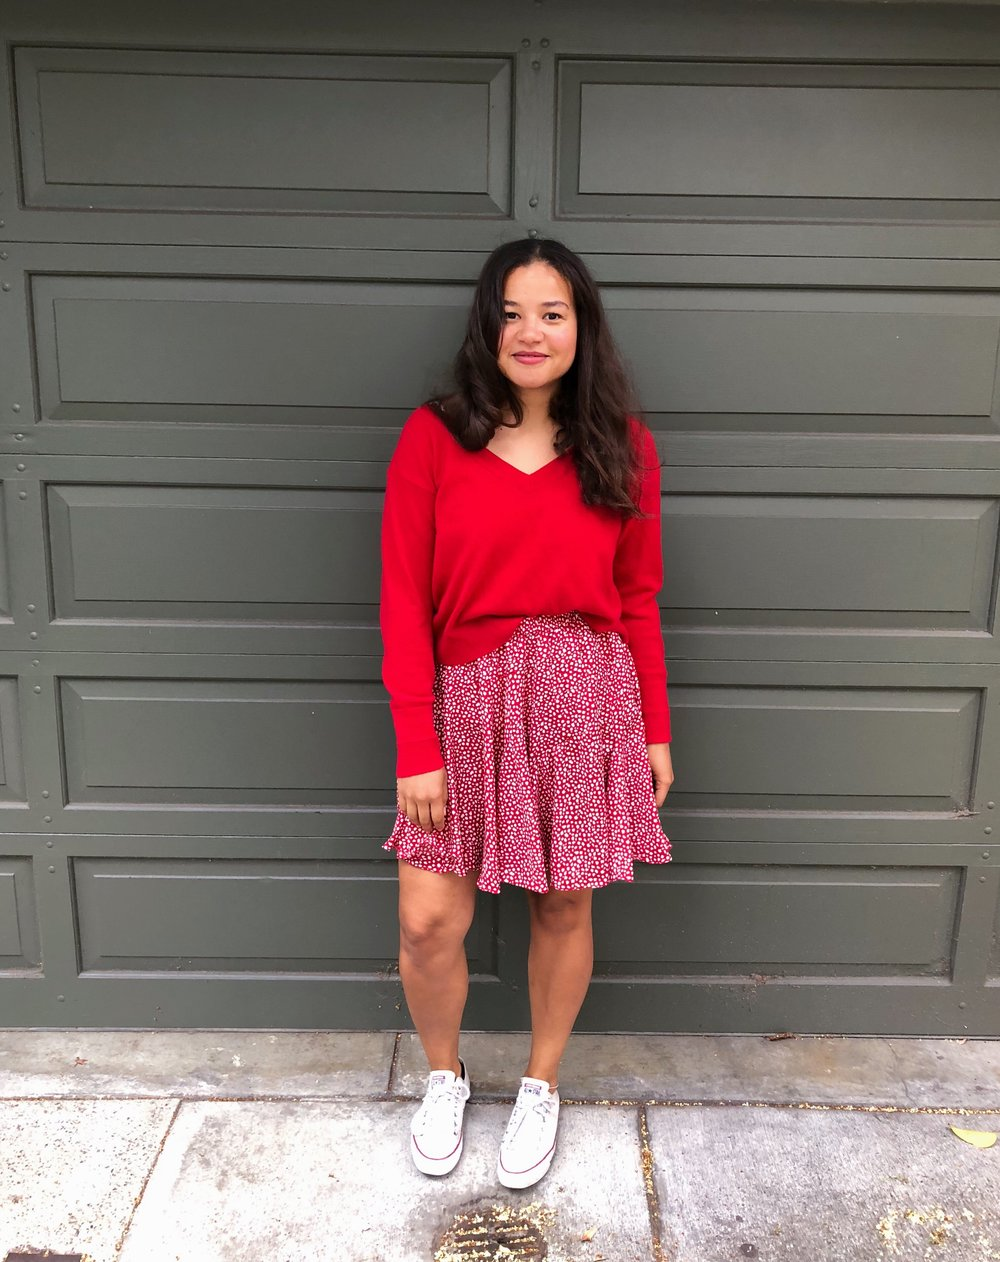 Skirt: Ranna Gill | Sweater: Everlane,  available on sale in other colors here  | Shoes: Converse,  available here